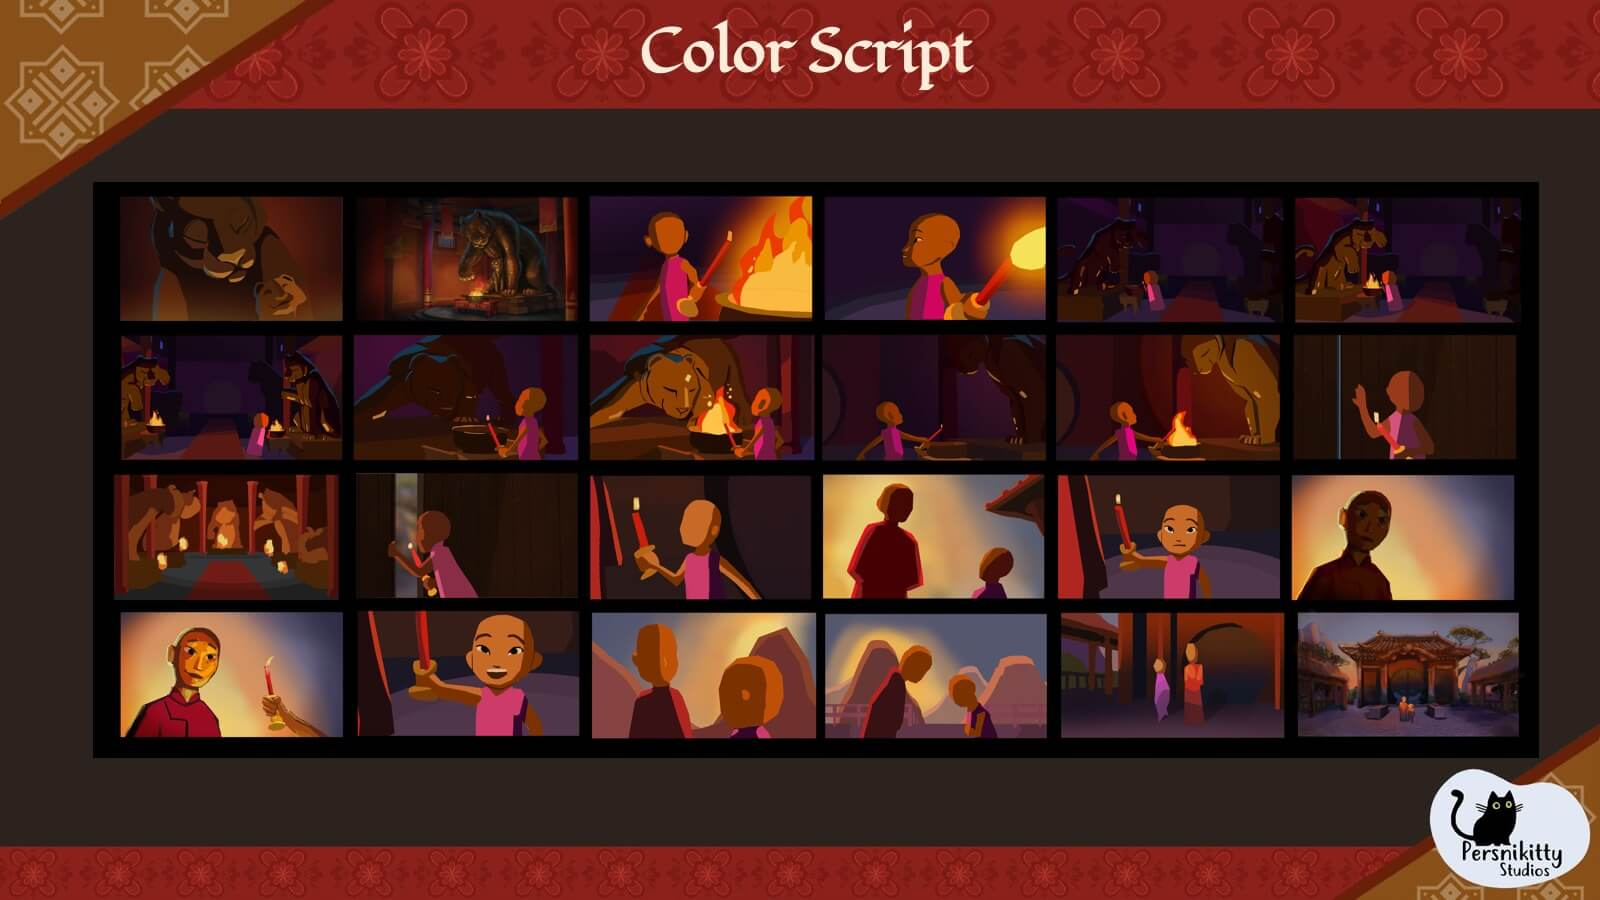 A slide featuring the color script for the film.